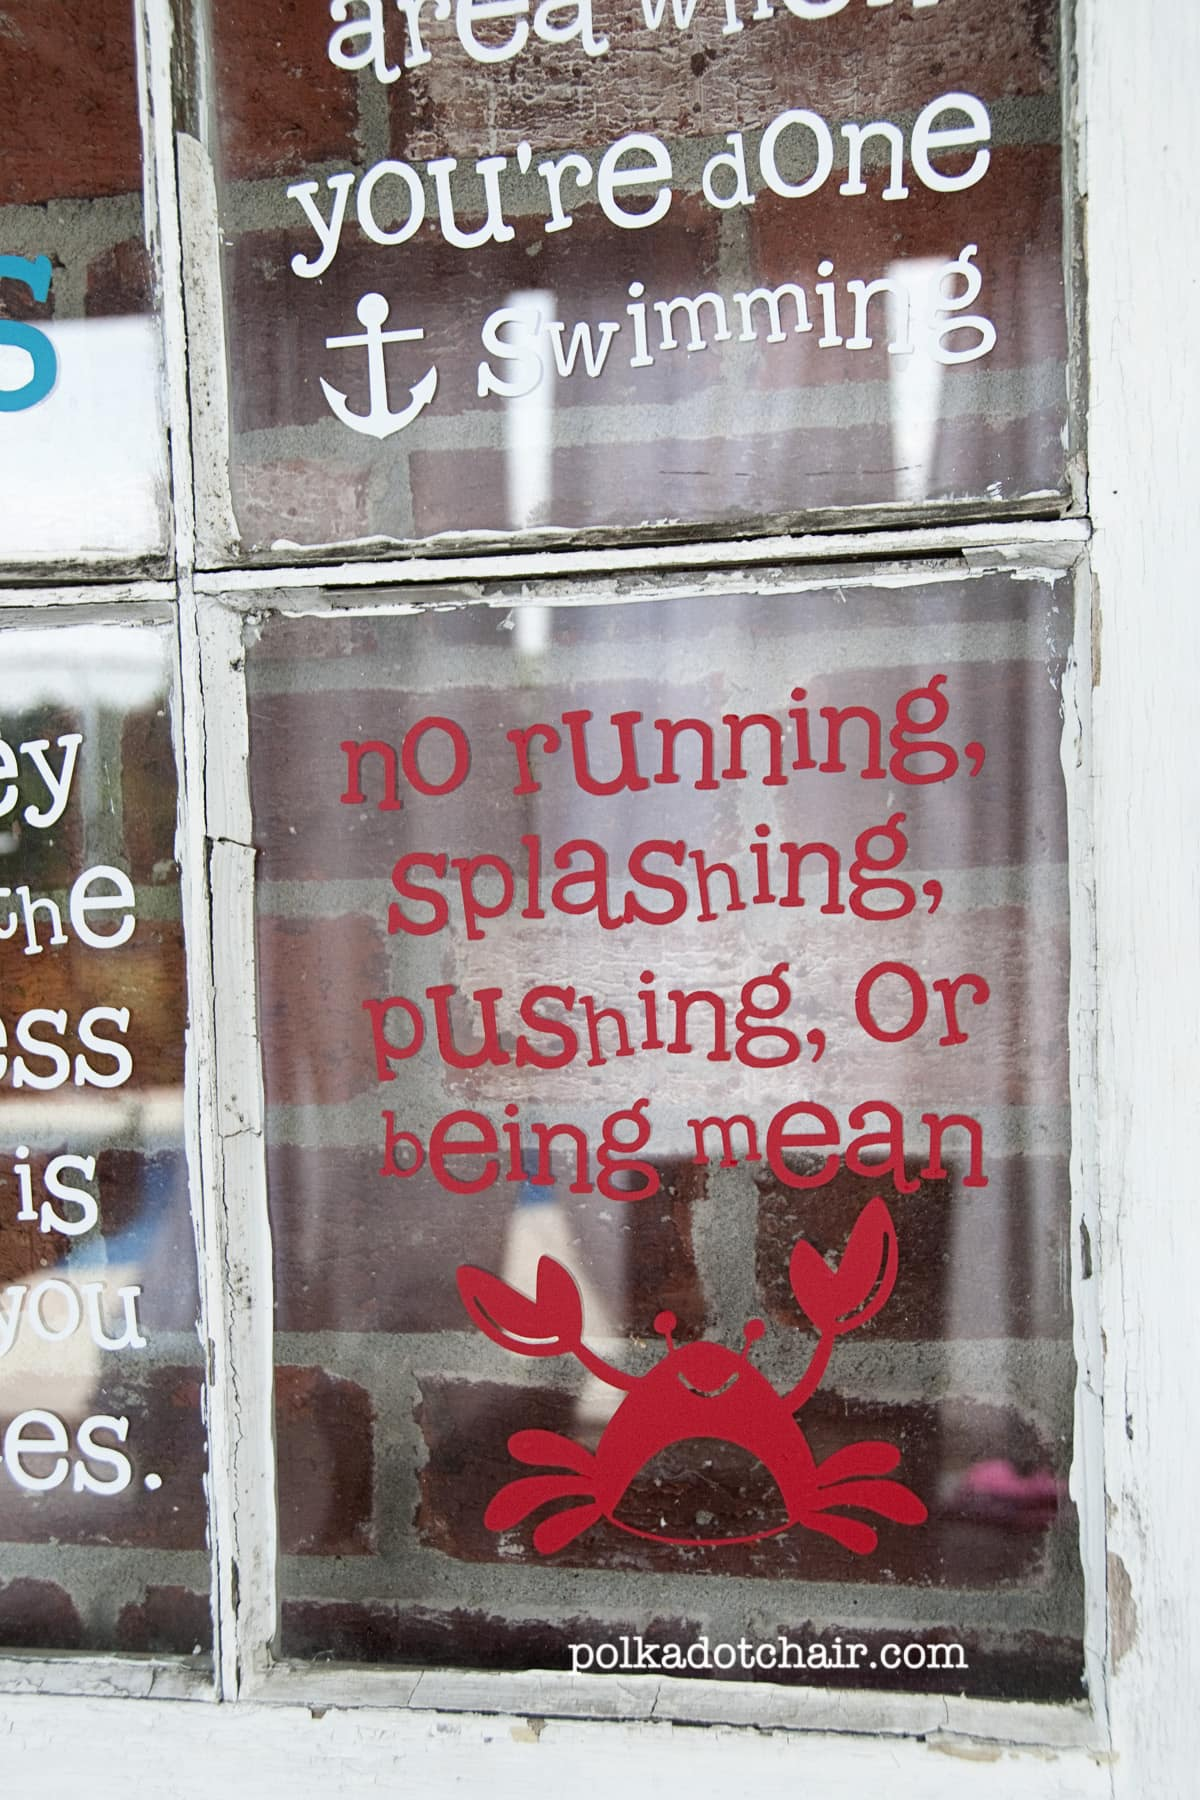 Pool Rules Sign Window Project The Polkadot Chair